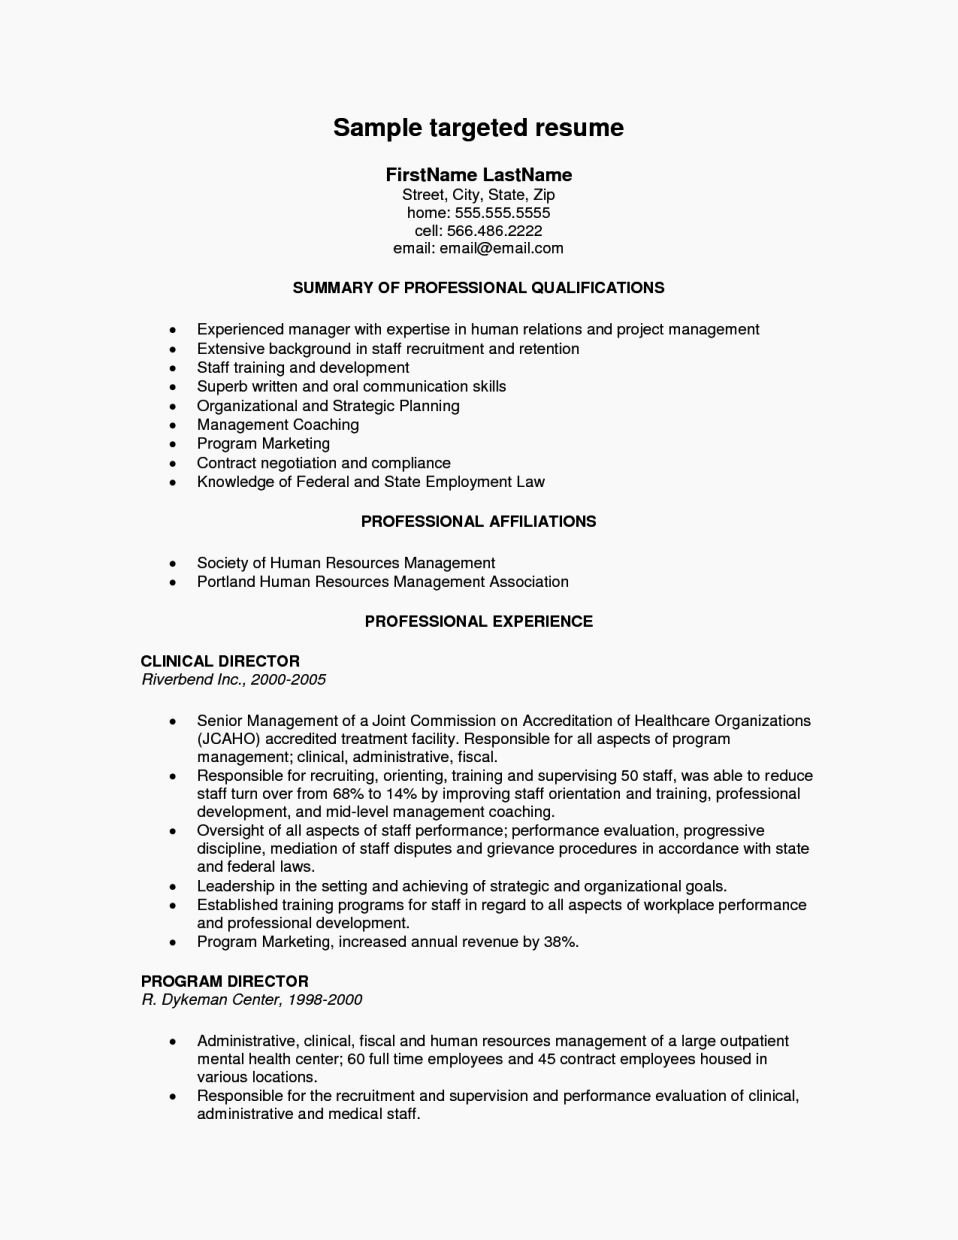 Examples Tar Ed Resumes Resume Template